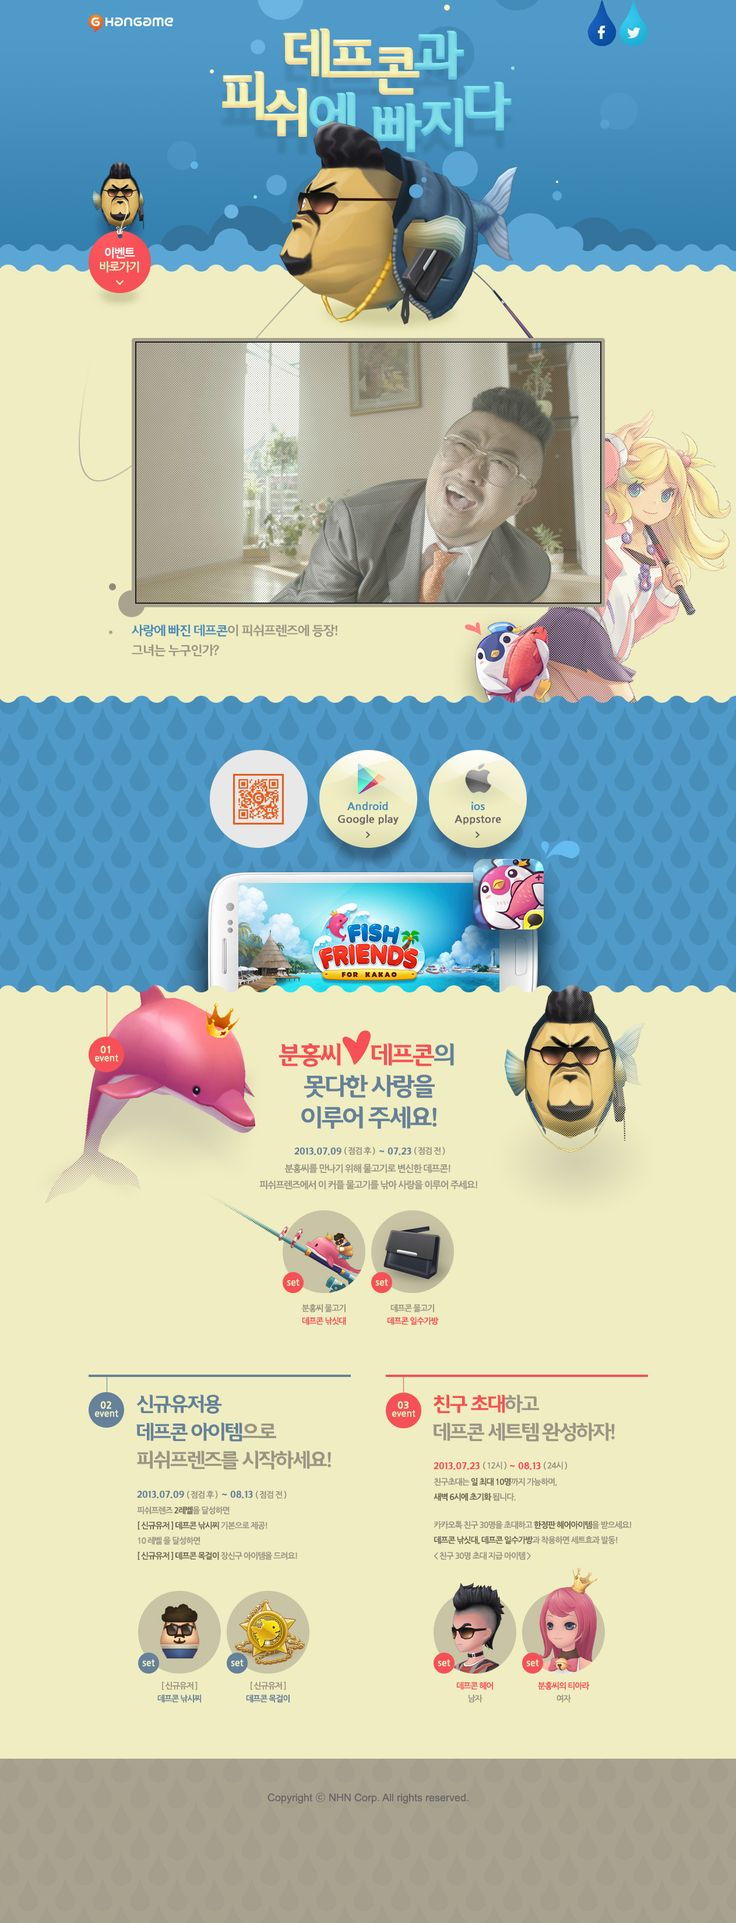 fish friends mobile game event…